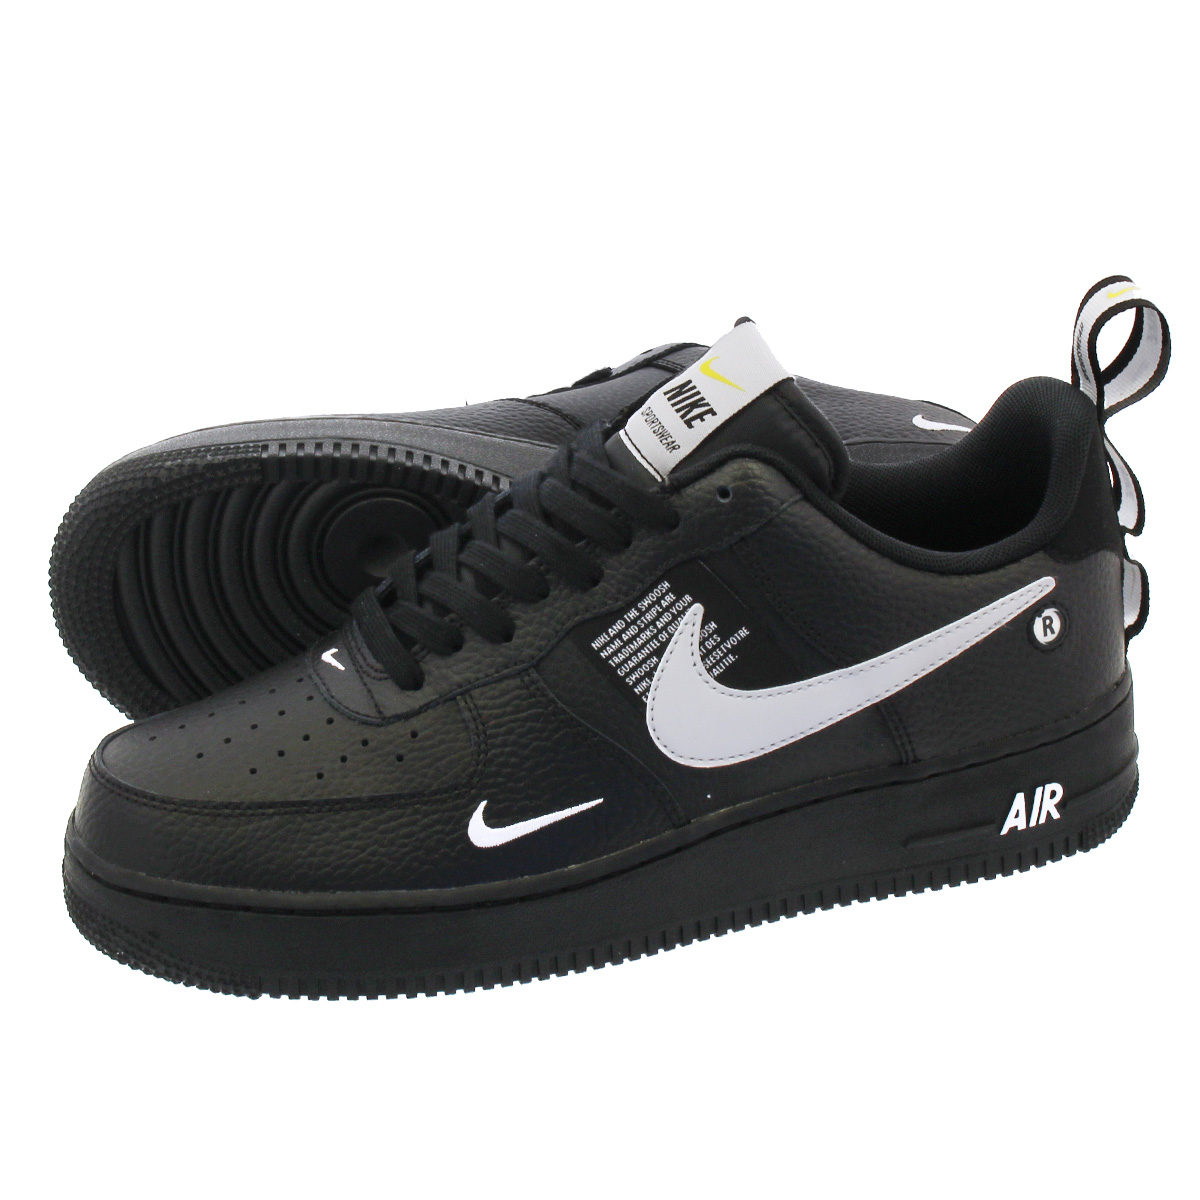 NIKE AIR FORCE 1 '07 LV8 UTILITY ナイキ エア フォース 1 '07 LV8 ユーティリティ BLACK/WHITE/BLACK/TOUR YELLOW aj7747-001